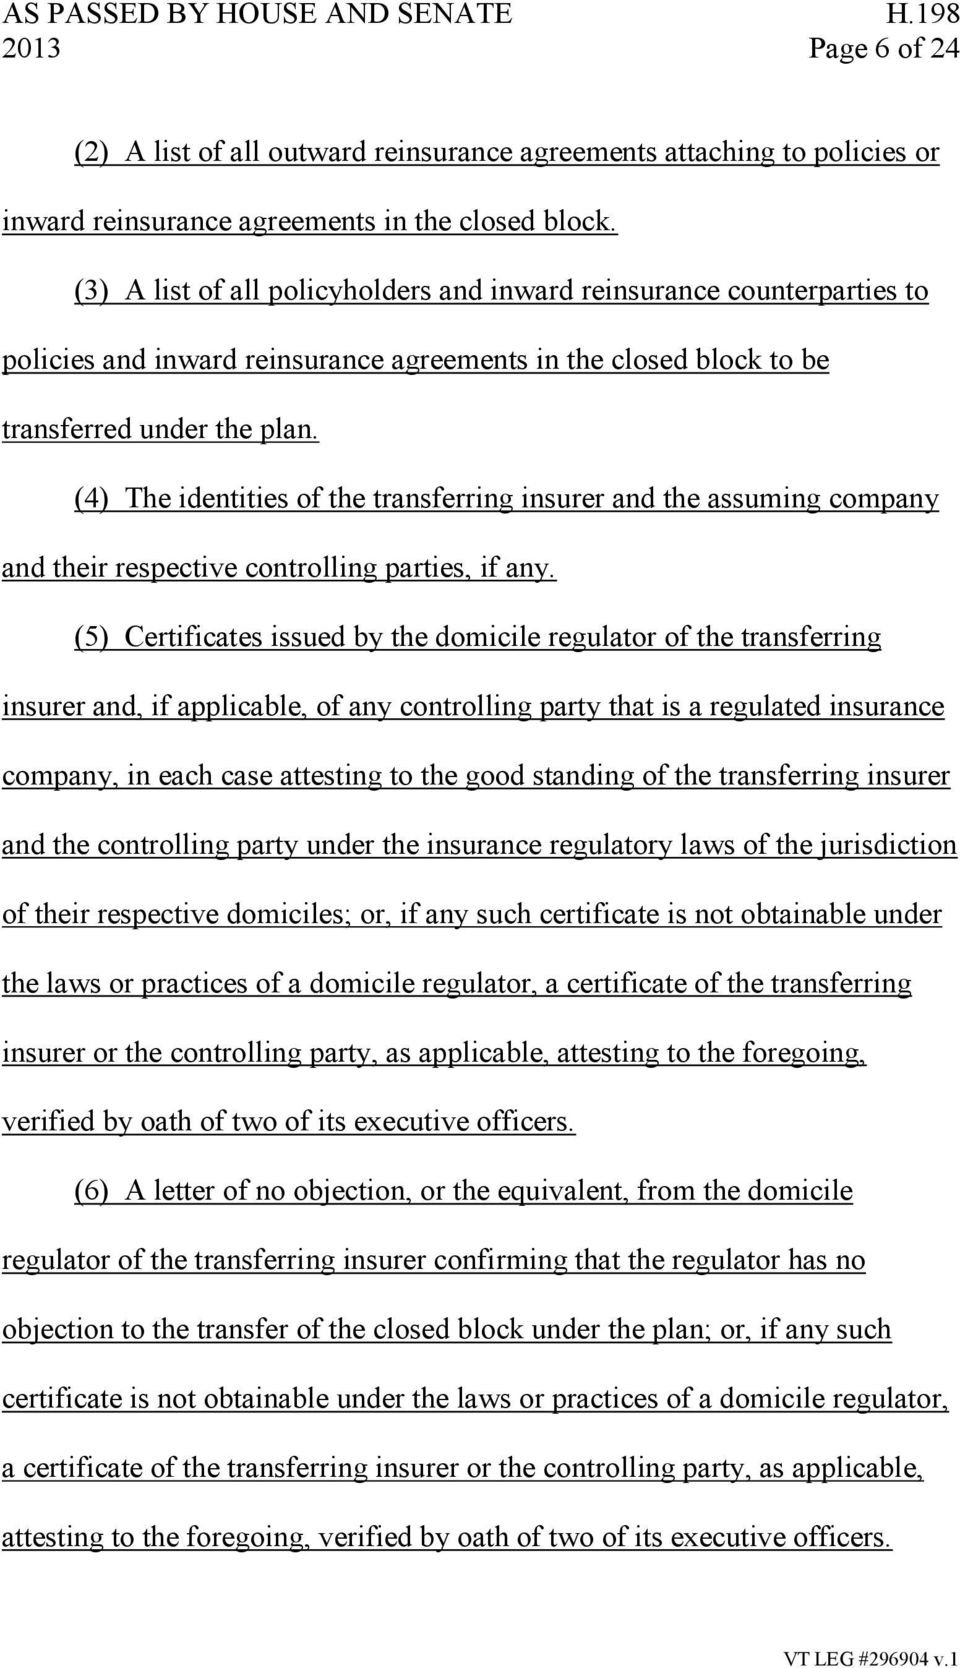 (4) The identities of the transferring insurer and the assuming company and their respective controlling parties, if any.